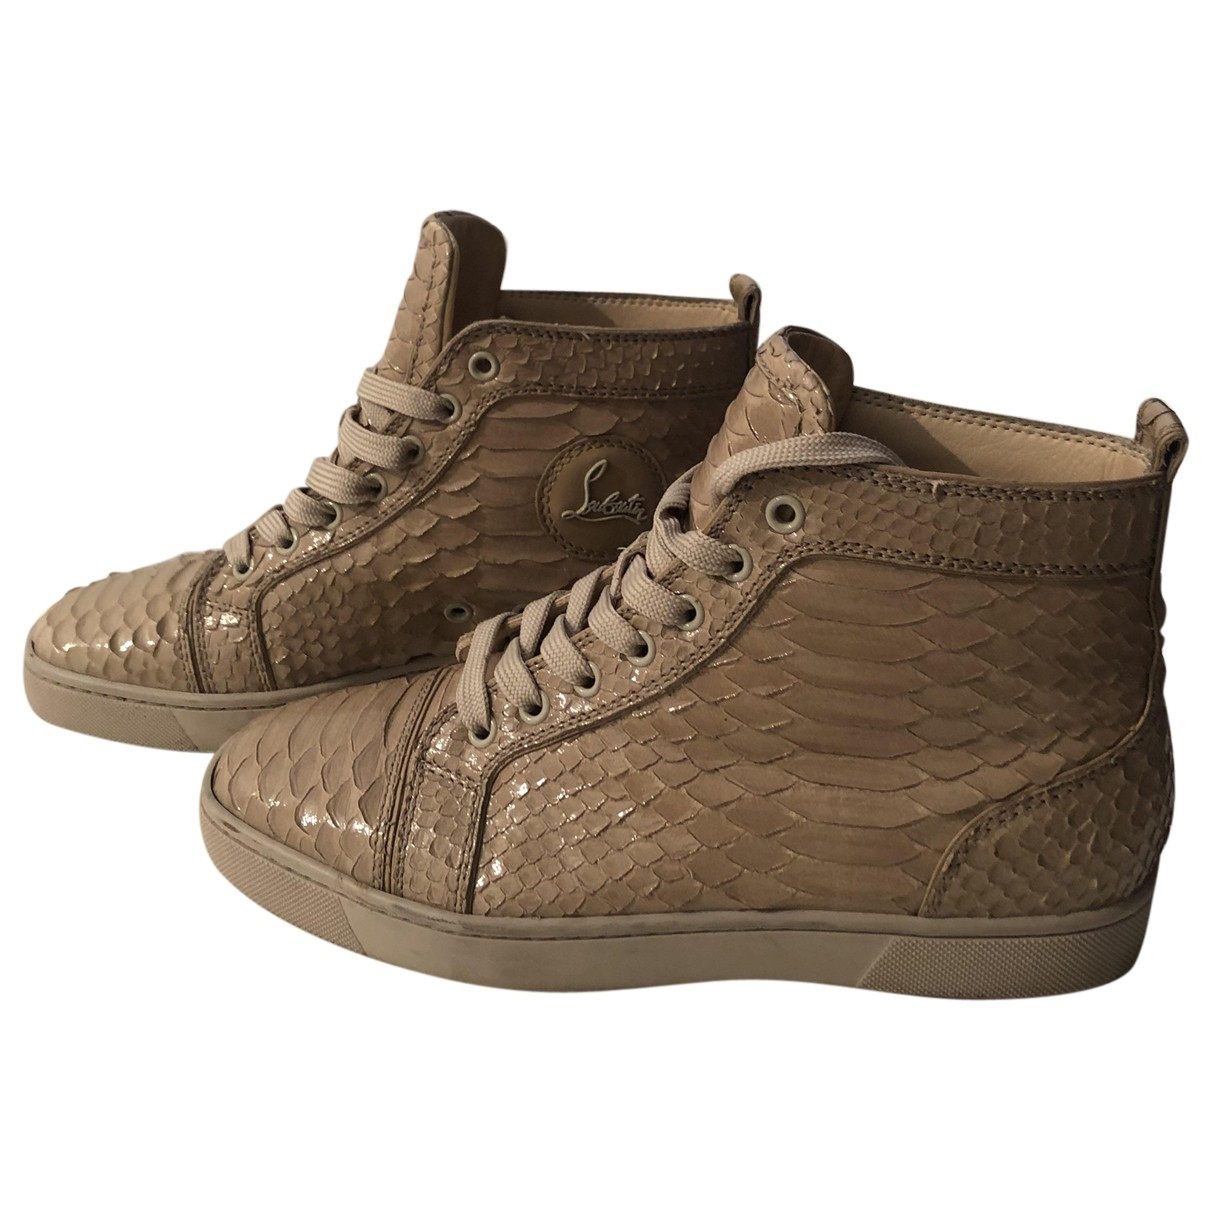 Christian Louboutin \N Beige Python Trainers for Women 40 EU